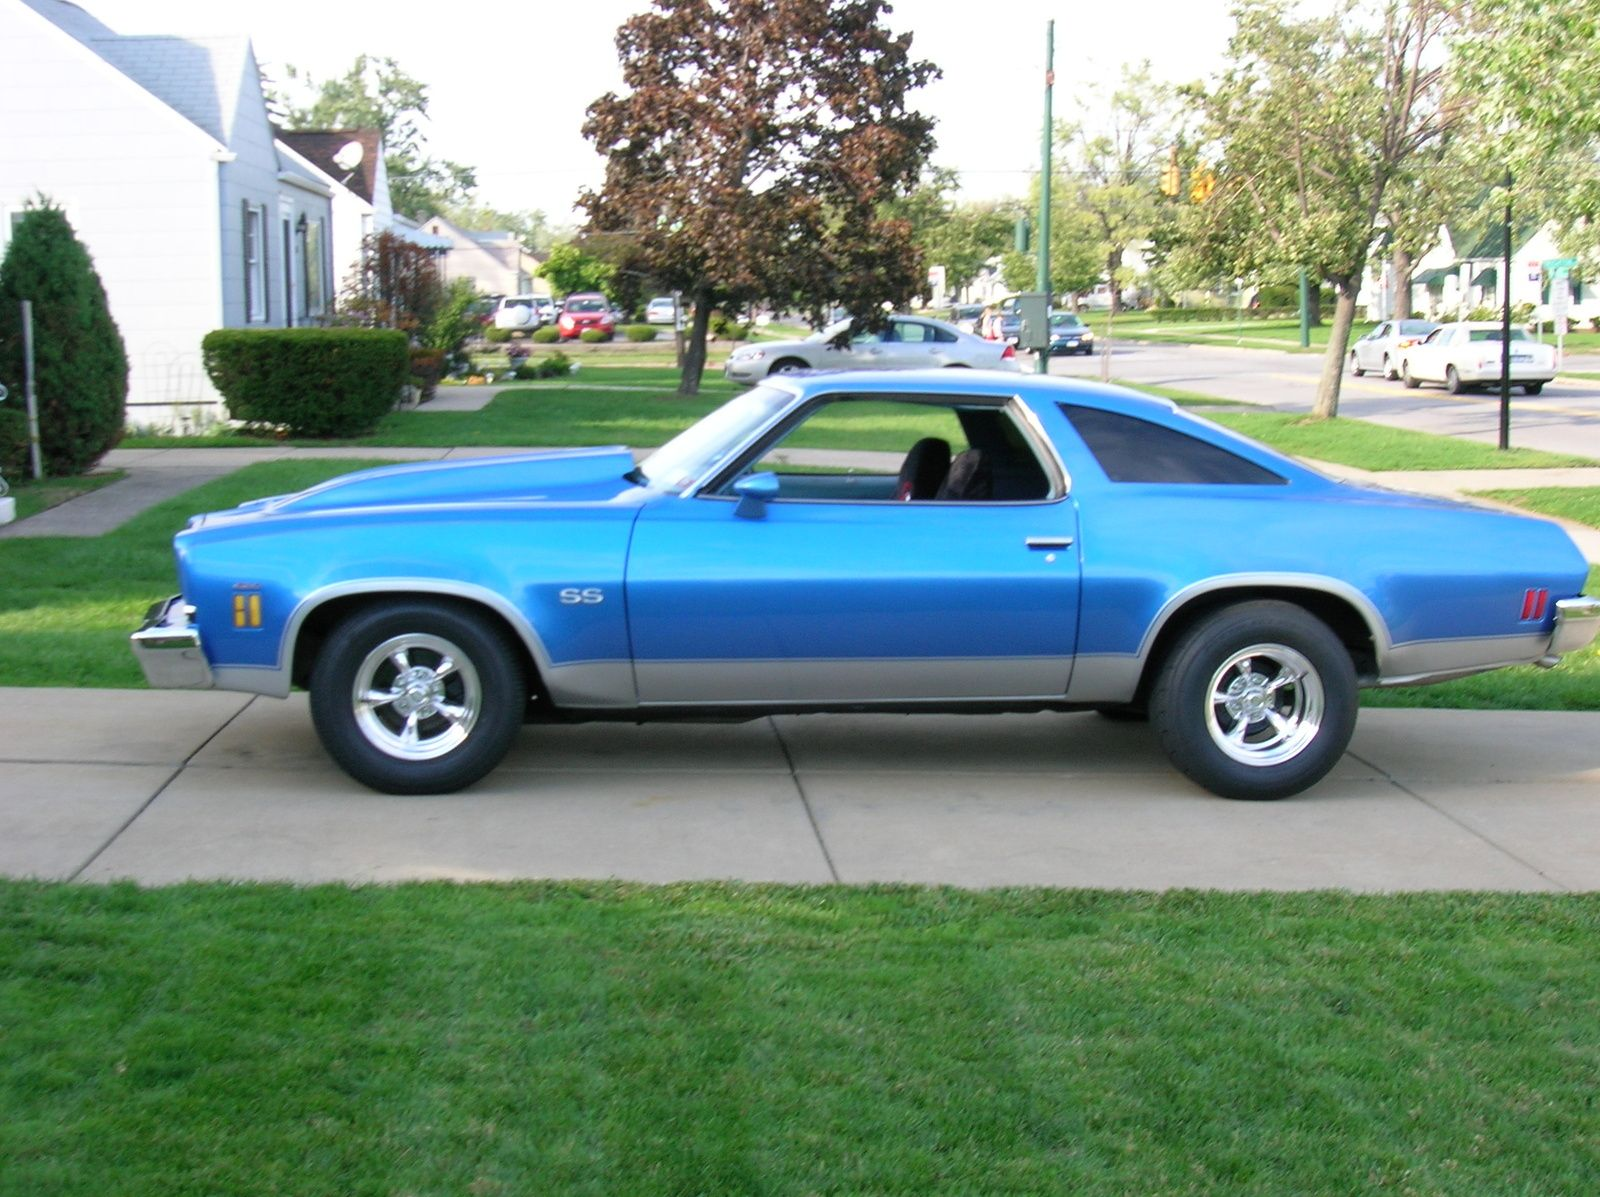 1973 Chevrolet Chevelle Pictures Cargurus Chevy Muscle Cars Chevrolet Chevelle Chevelle